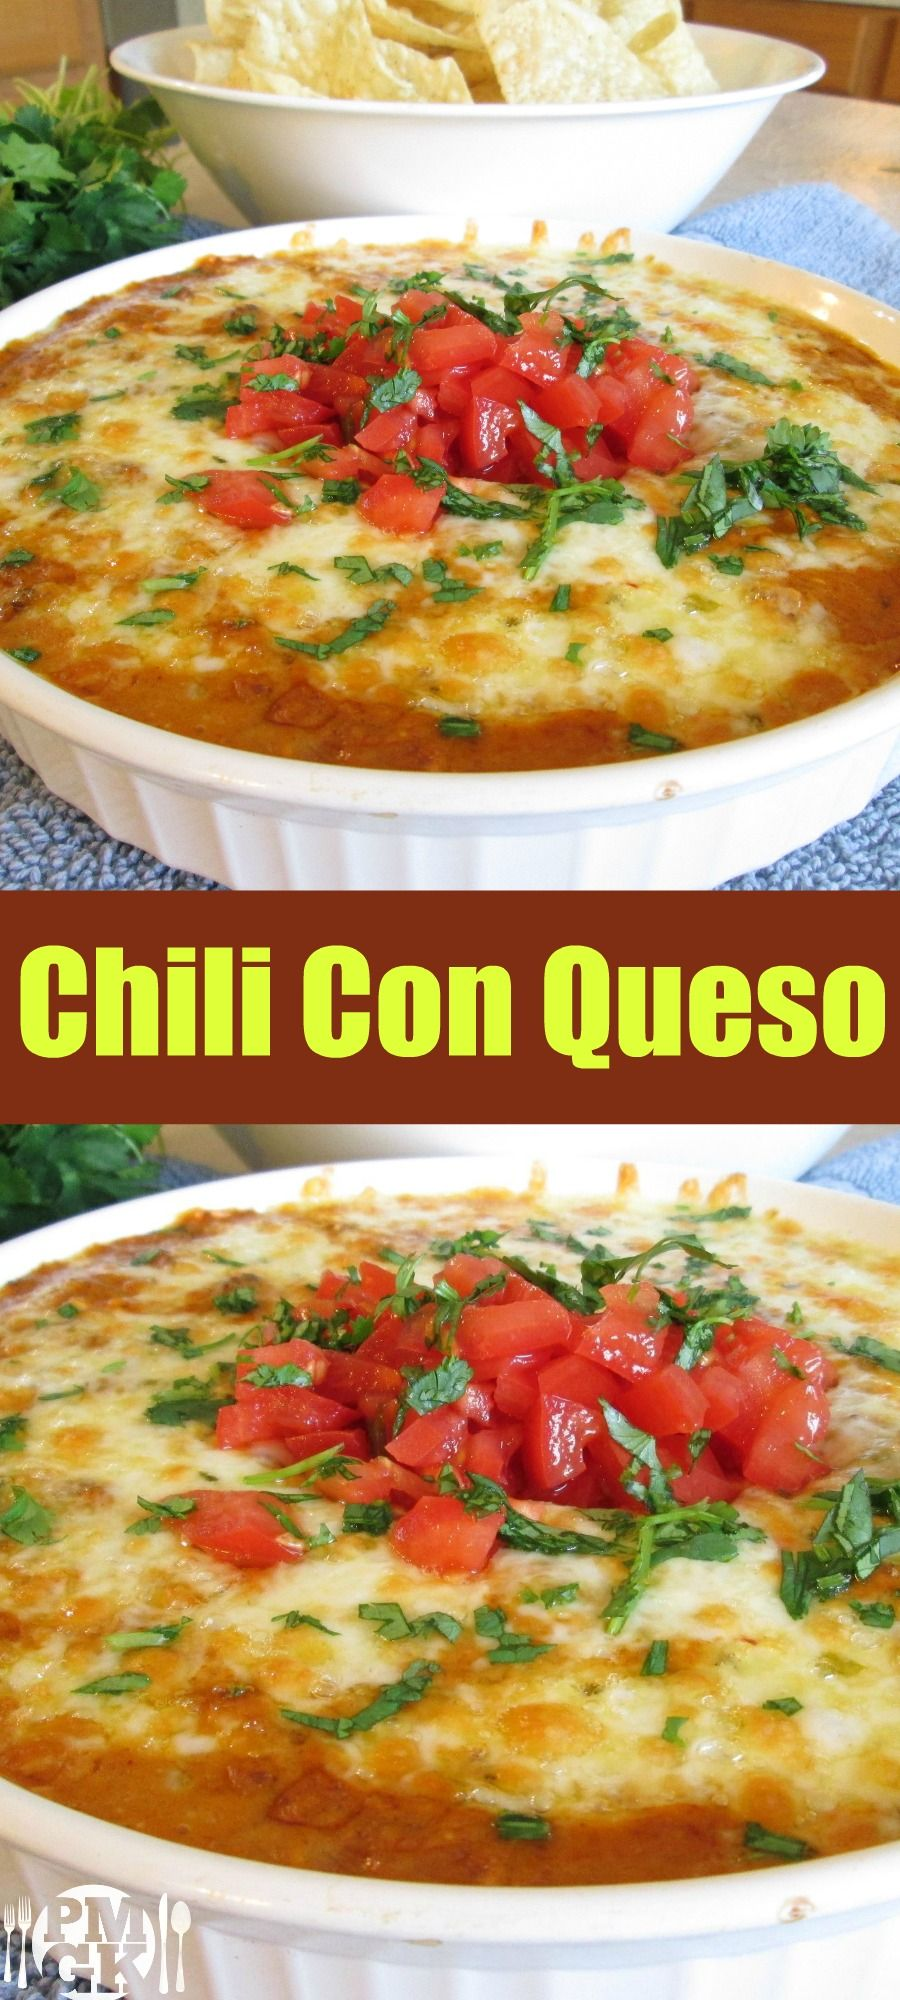 3 cheese chili con queso gourmet salsa and american food recipes food forumfinder Image collections